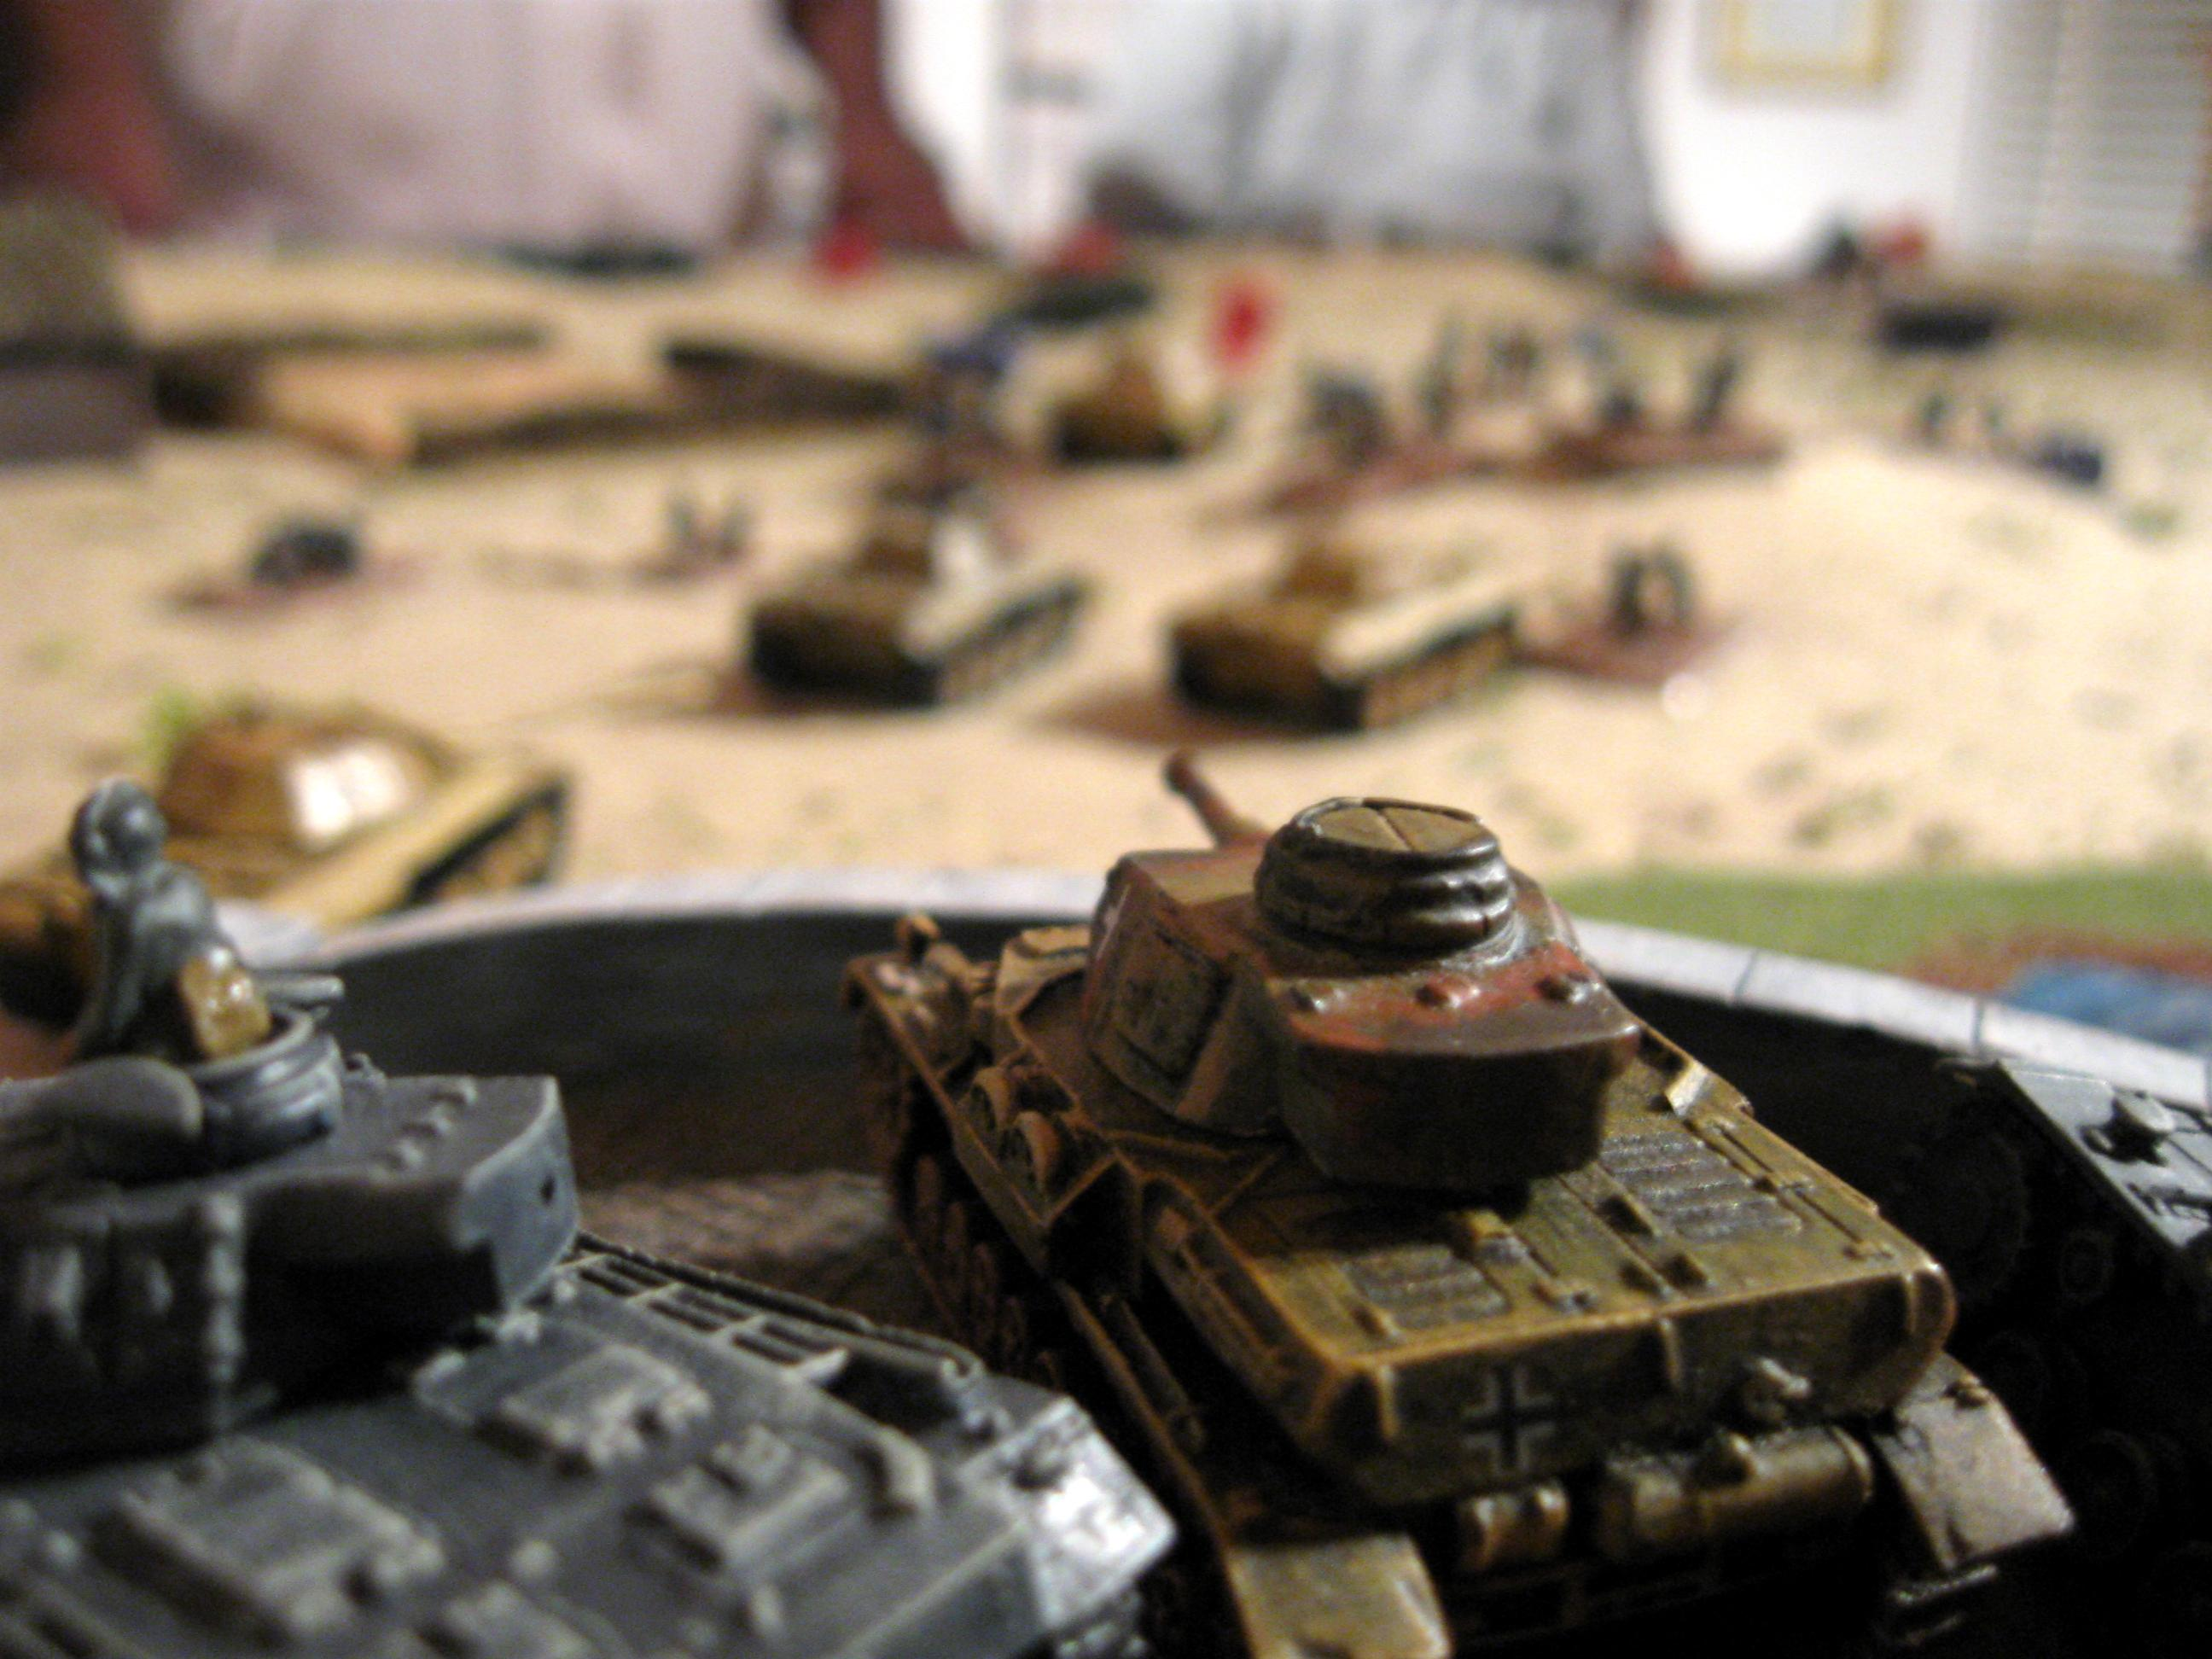 15mm, Flames Of War, Jack's Panthers hold the bridge